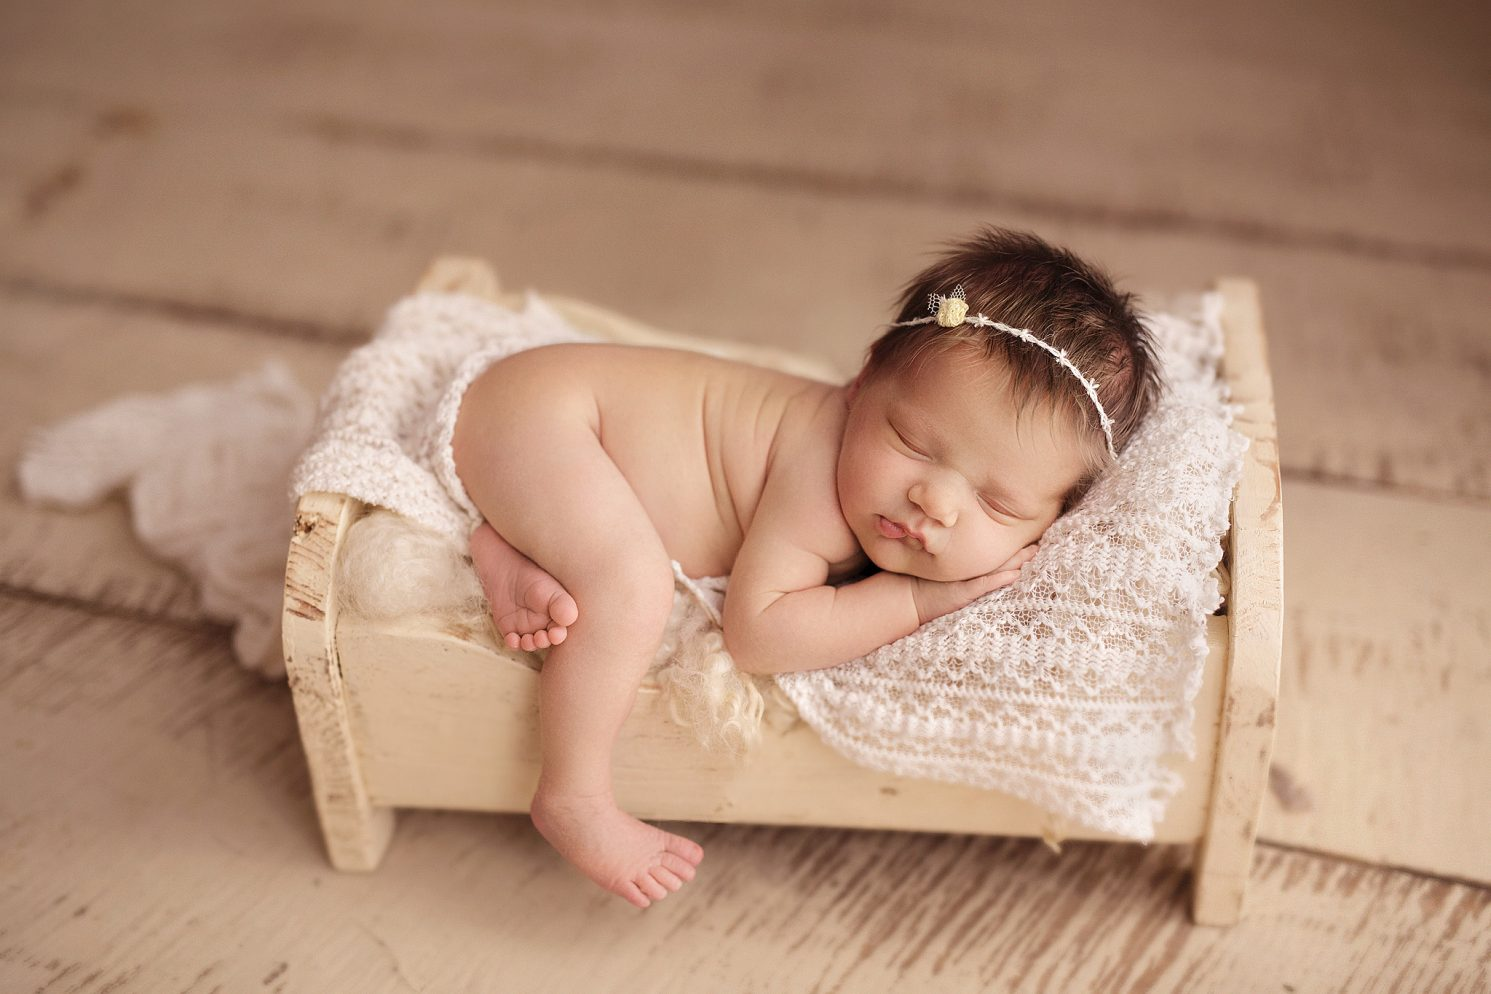 She will run a one day newborn posing workshop geared towards perfecting newborn posing expanding your knowledge on safe baby photography in props and on a